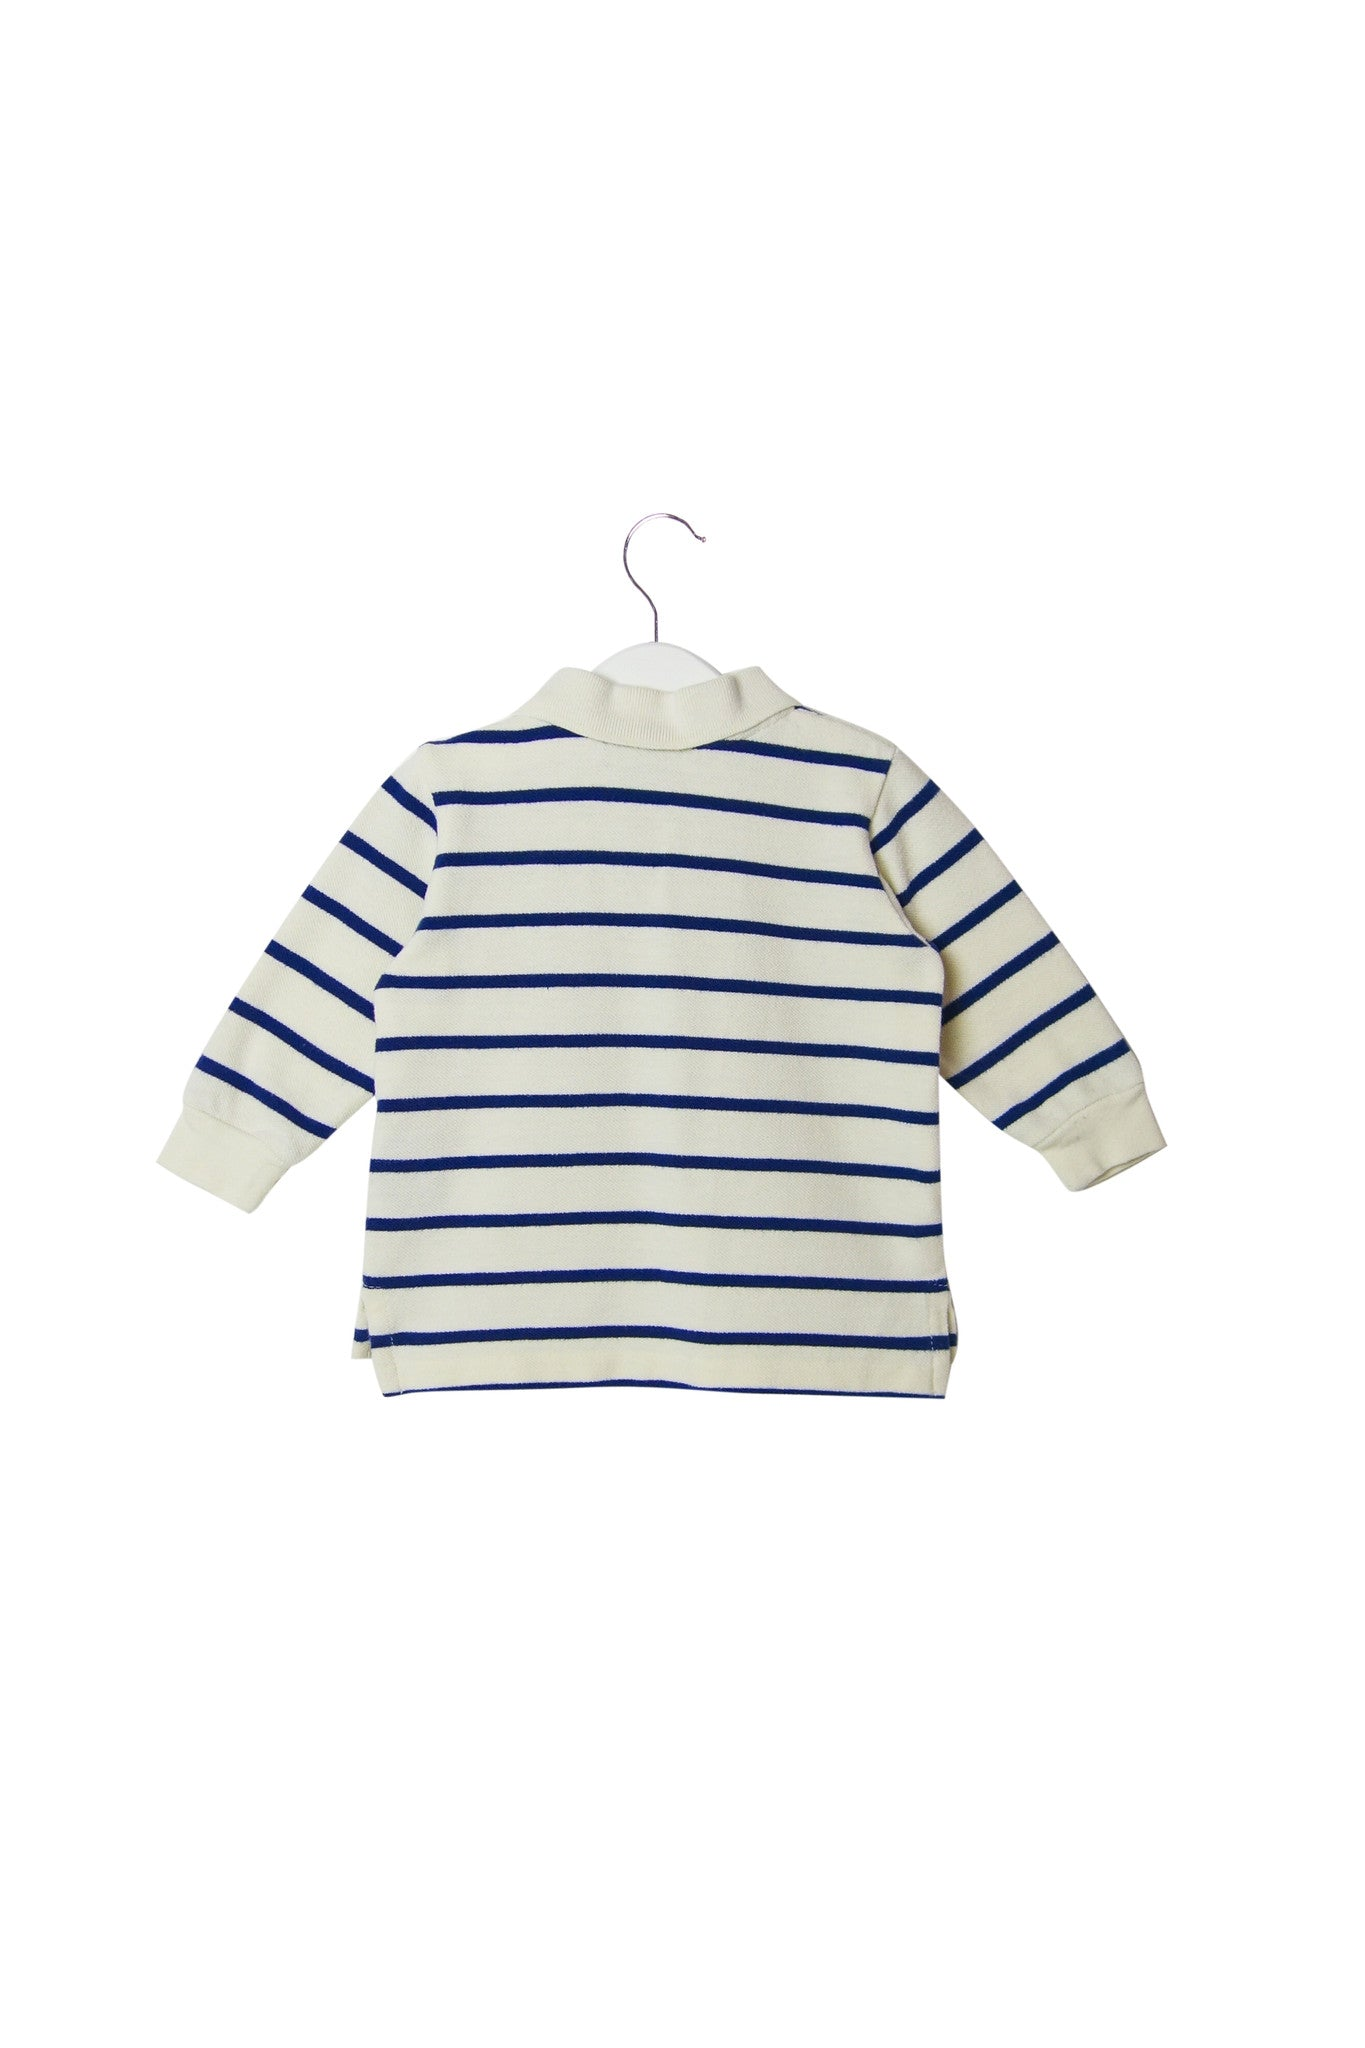 10003380 Polo Ralph Lauren Baby~Polo 9M at Retykle